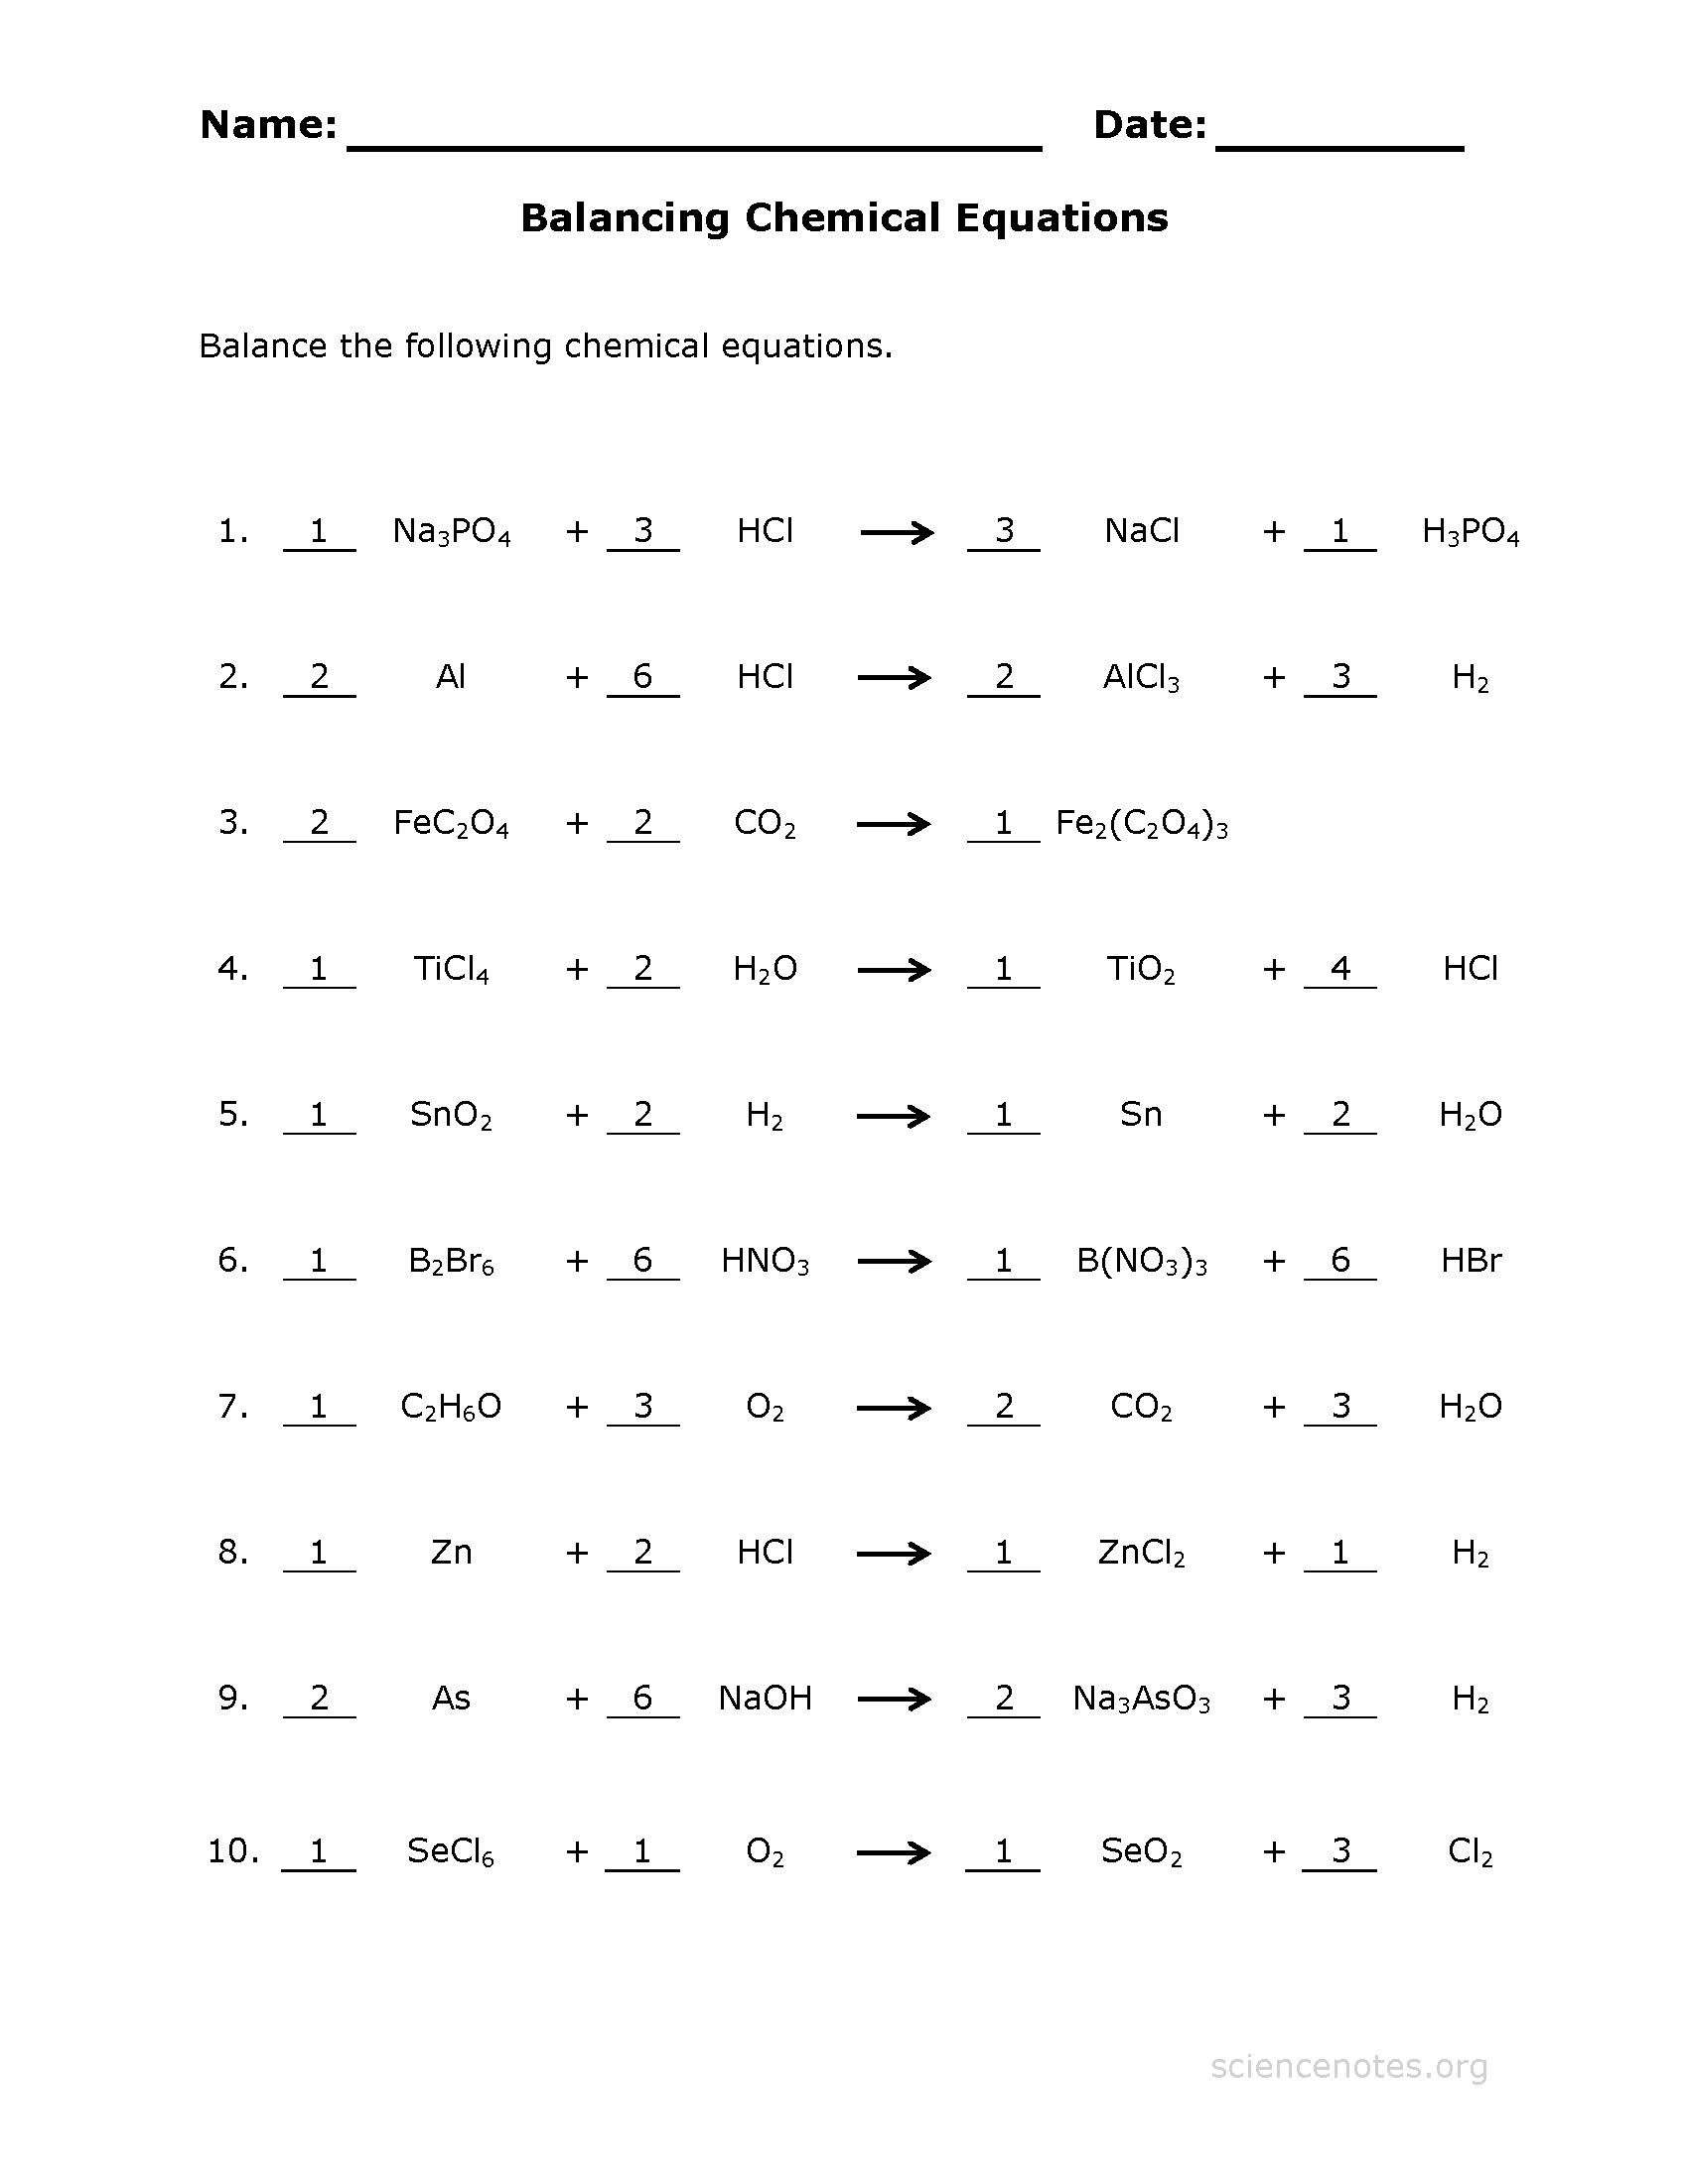 Balance Chemical Equations Worksheet 4 Key